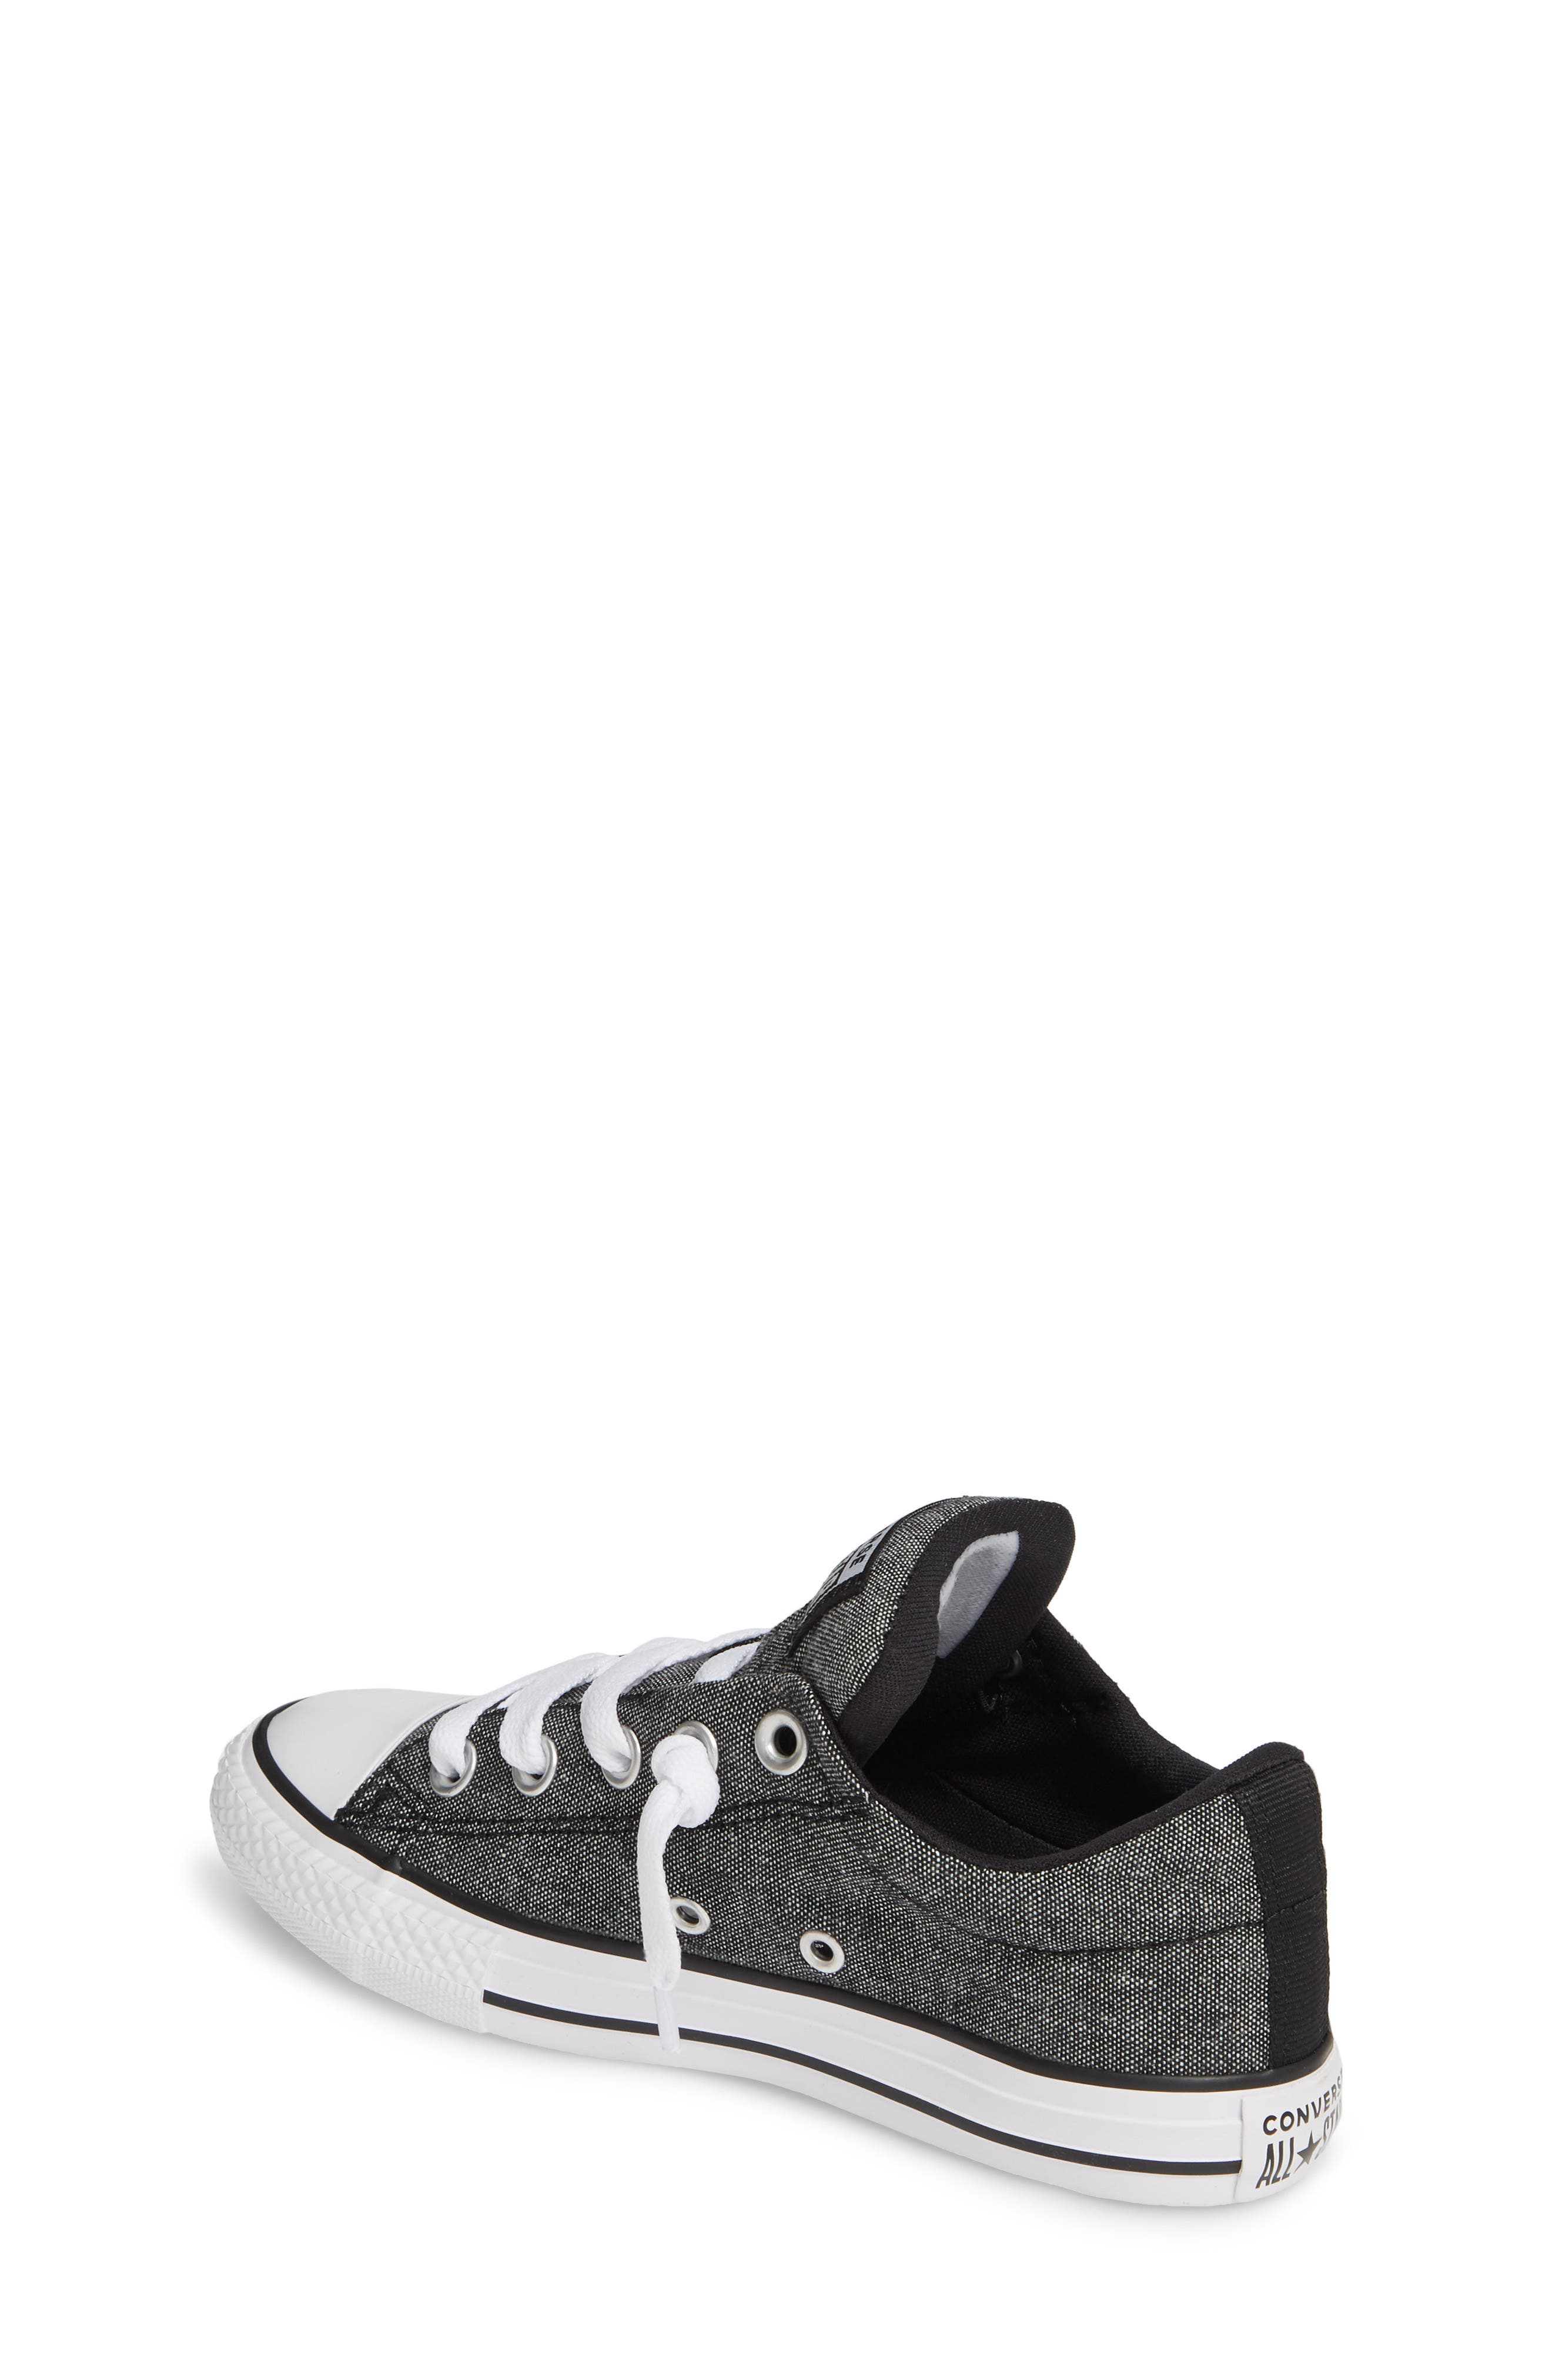 CONVERSE, Chuck Taylor<sup>®</sup> All Star<sup>®</sup> Street Sneaker, Alternate thumbnail 2, color, BLACK/ BLACK/ WHITE